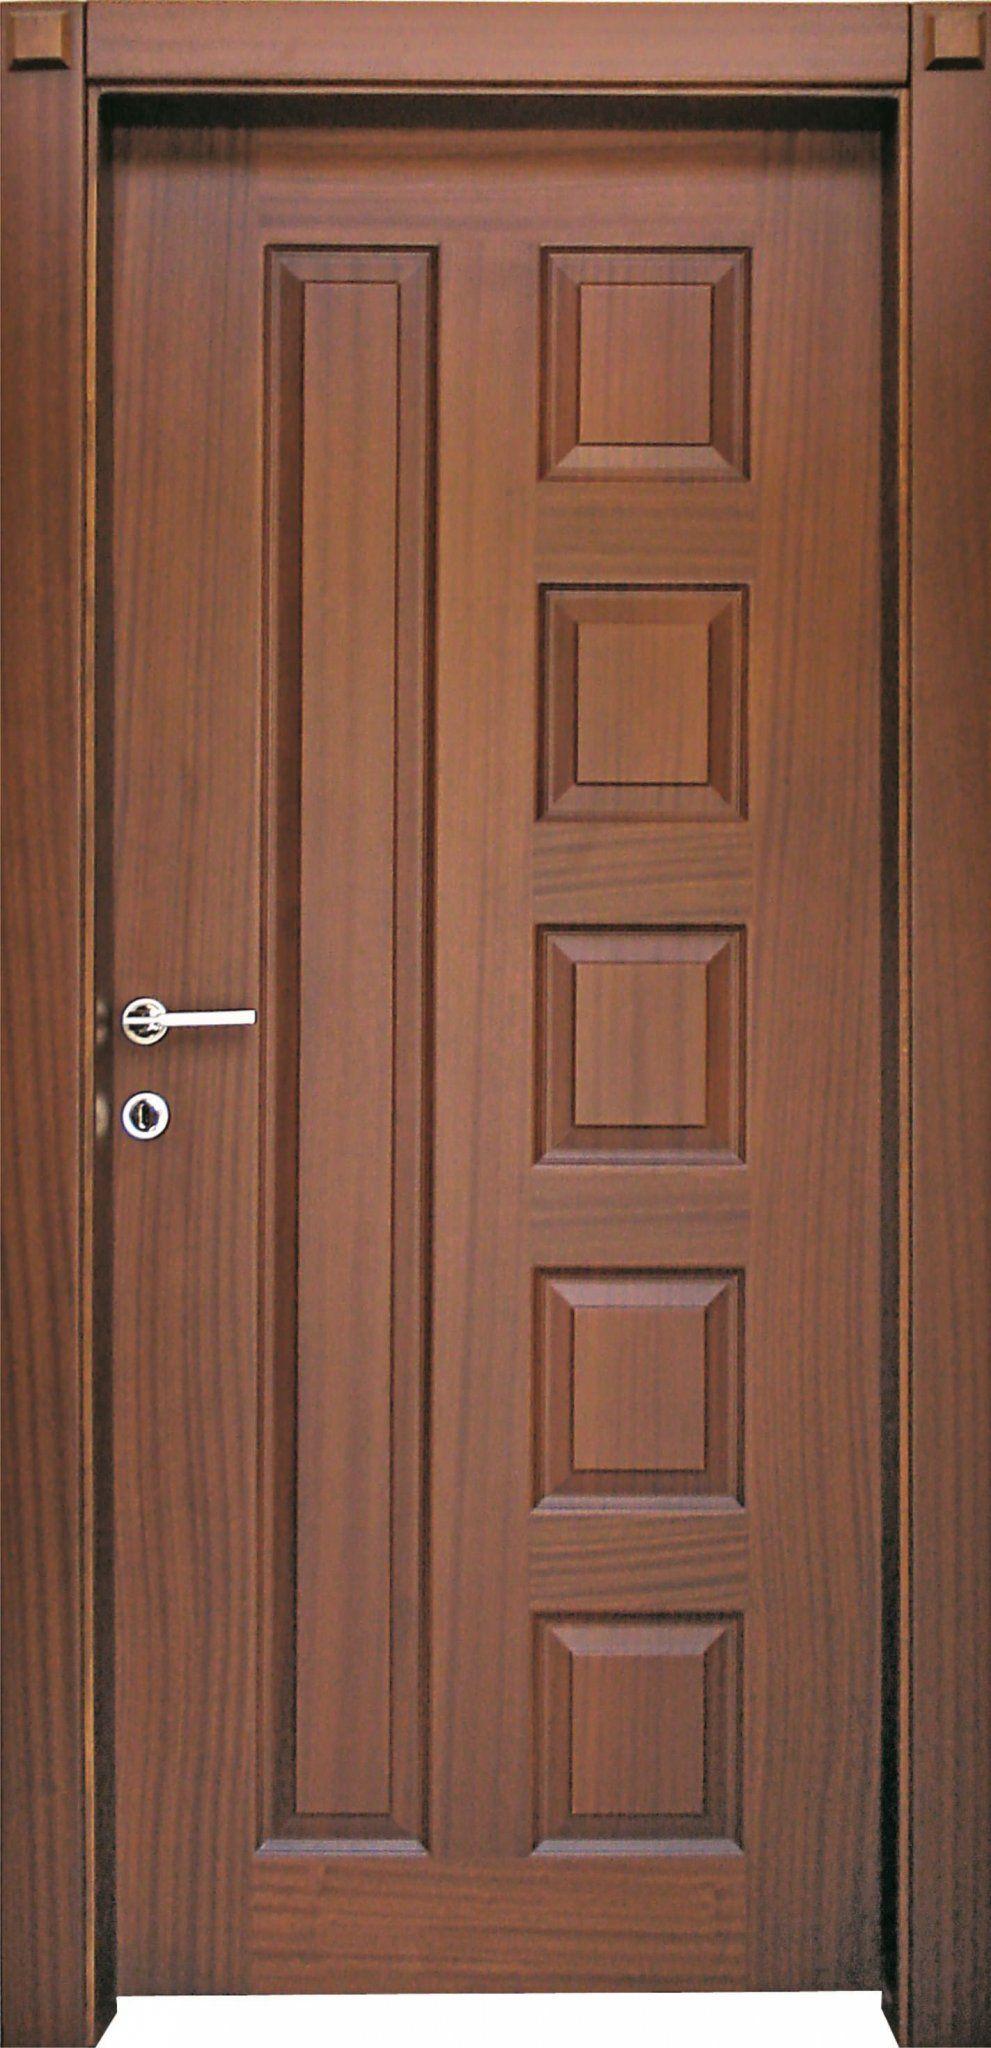 Top 50 Modern Wooden Door Design Ideas You Want To Choose Them For Your Home Engineering Dis Modern Wooden Doors Wooden Main Door Design Door Design Interior